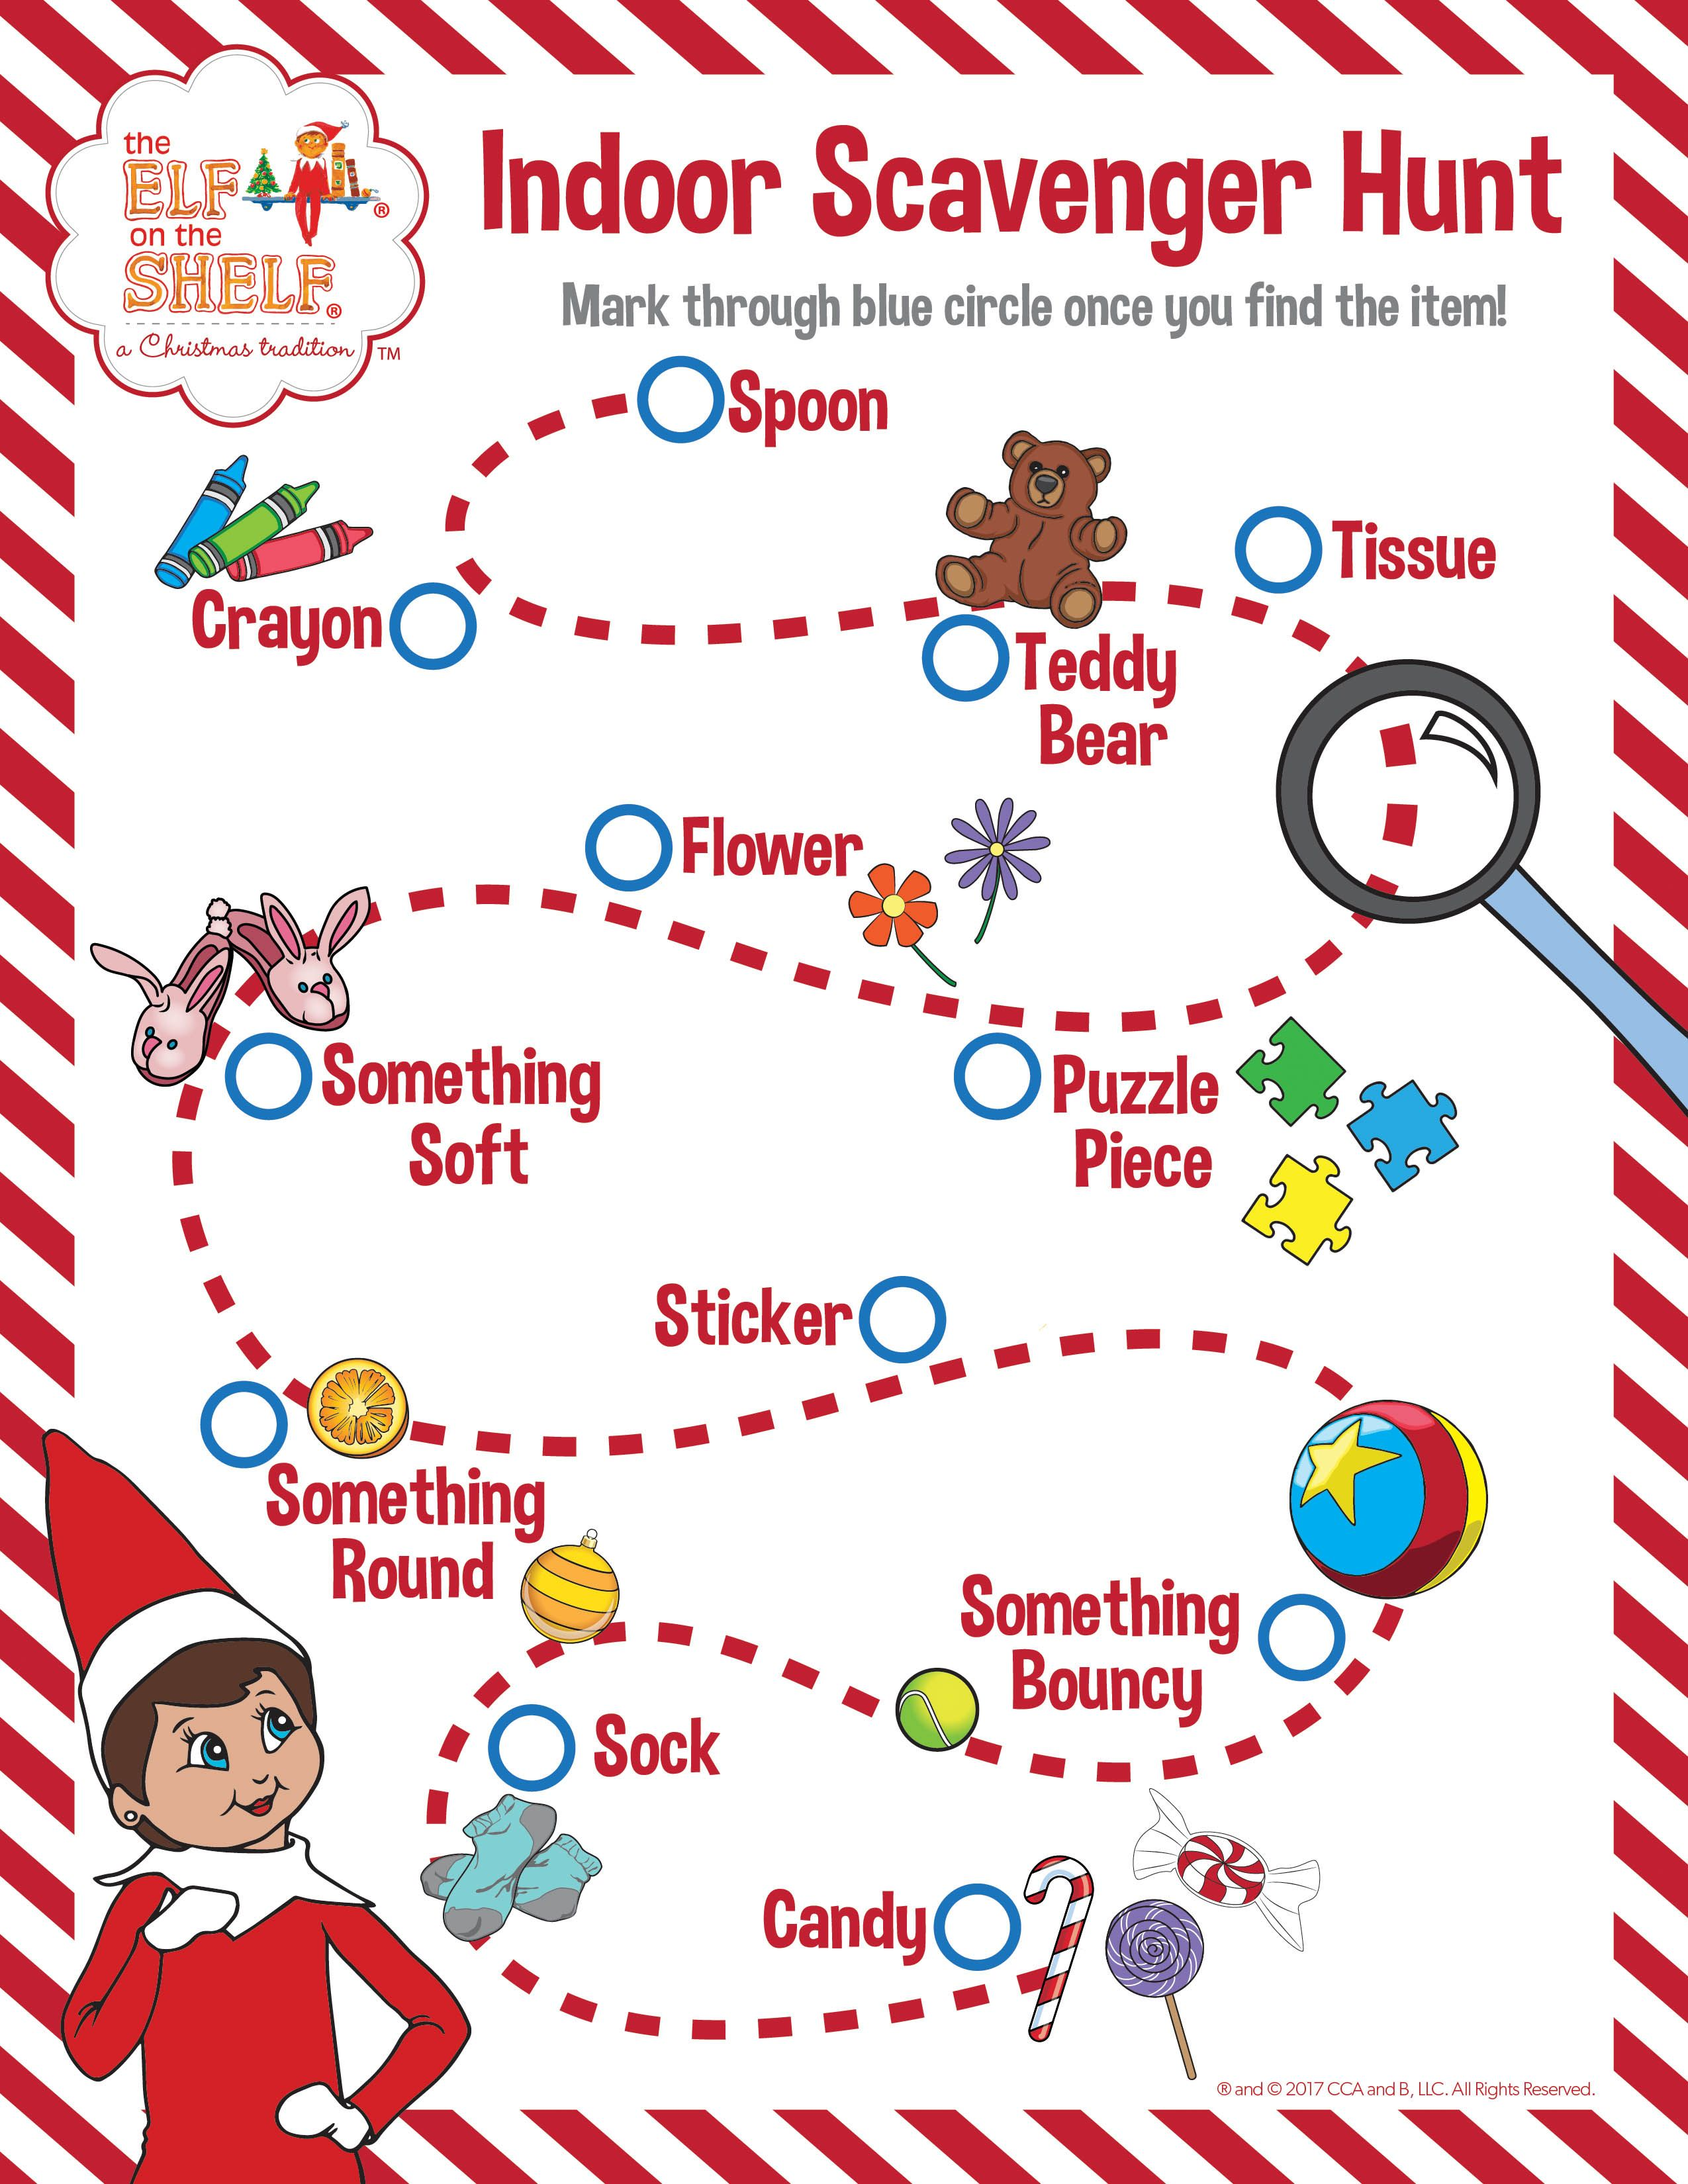 Indoor Scavenger Hunt for kids! See how many items you can